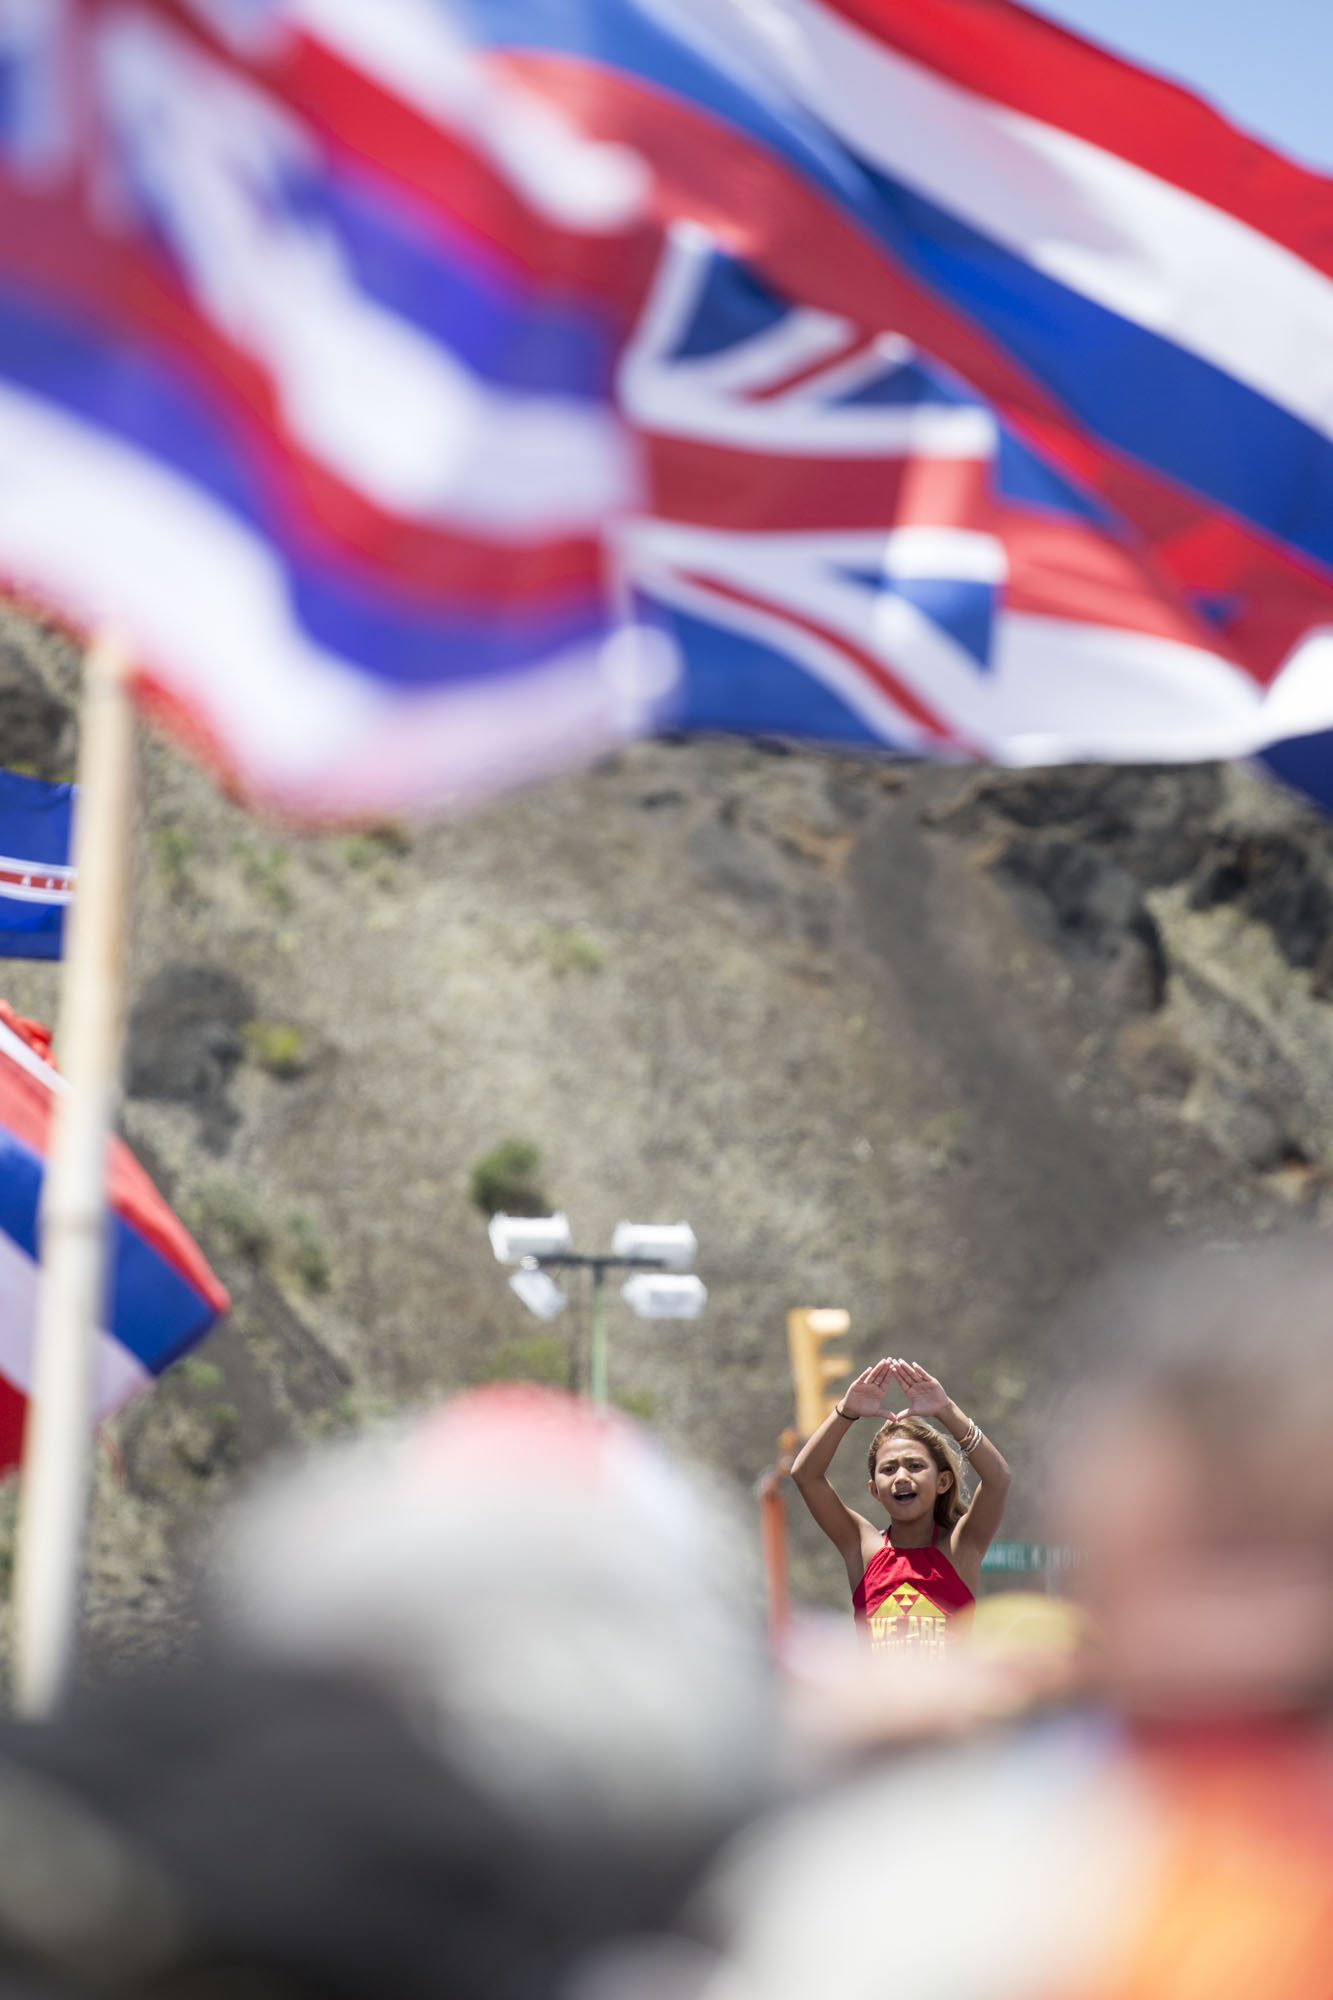 A young girl does the Kū Kiaʻi Mauna (stand guard over the mountain) hand symbol during Jam 4 Maunakea, a worldwide event that took place on August 11, 2019. People from around the world joined the protectors of Maunakea via livestream to sing Kū Haʻaheo and the Hawaiʻi Loa medley.